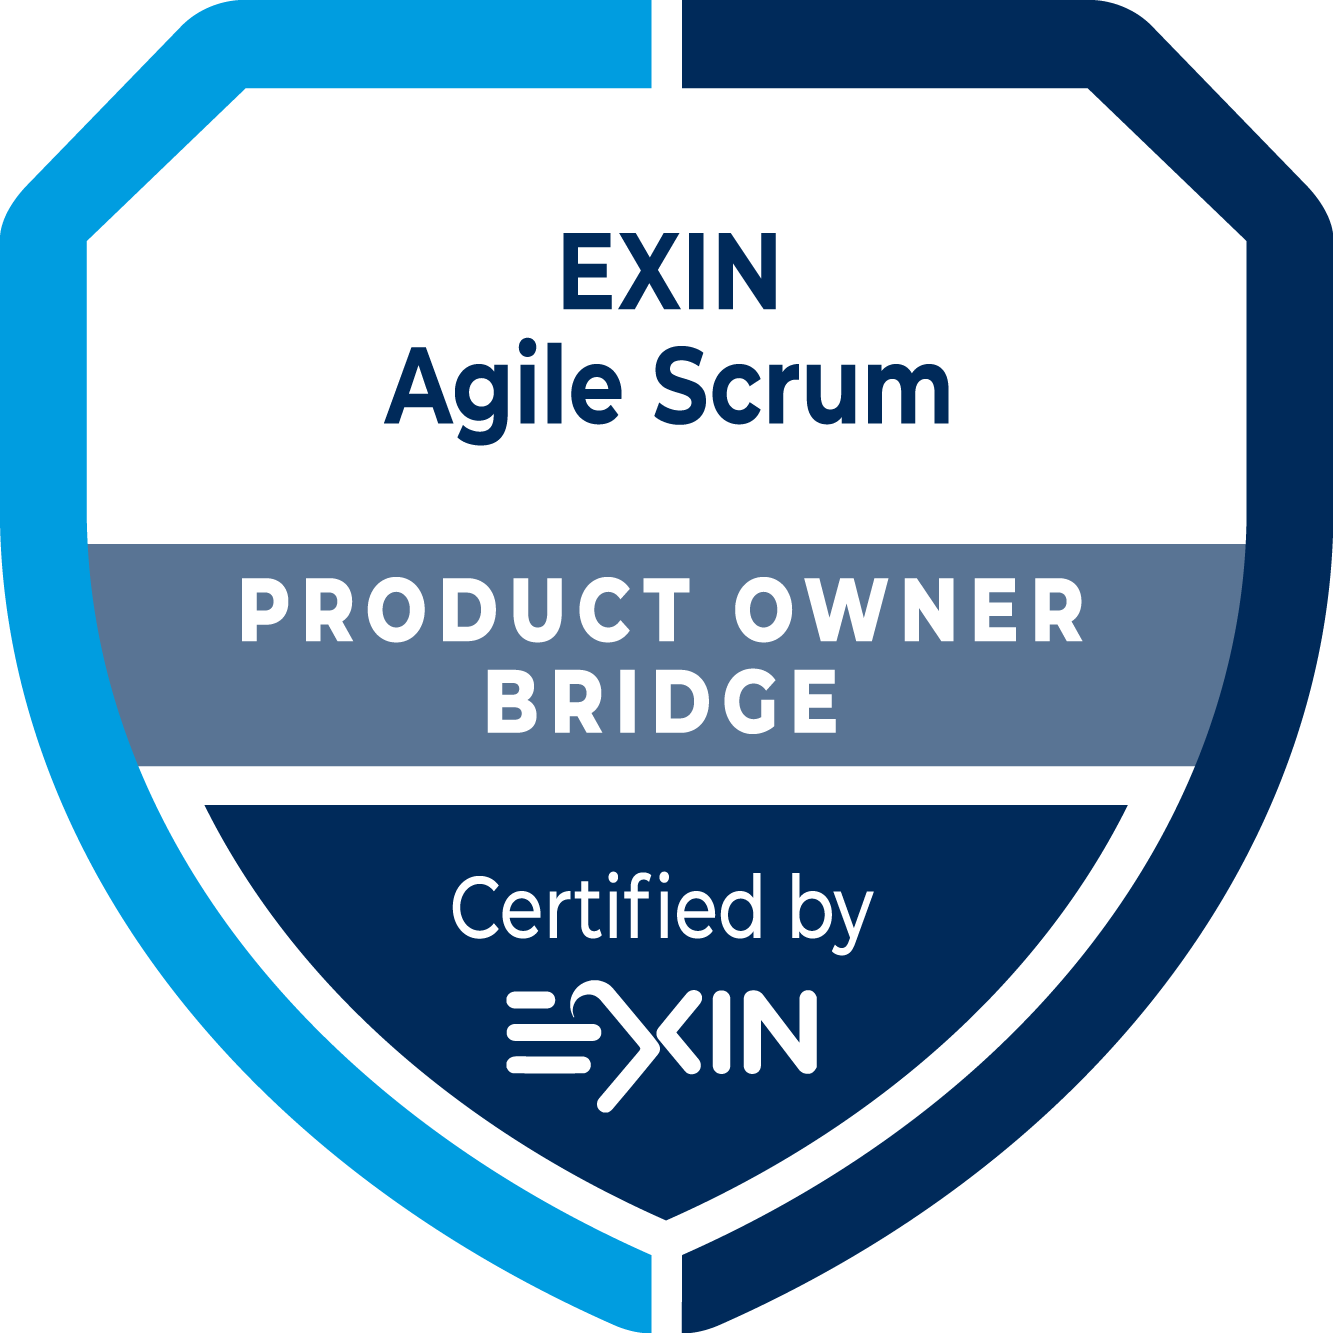 EXIN Agile Scrum Product Owner Bridge